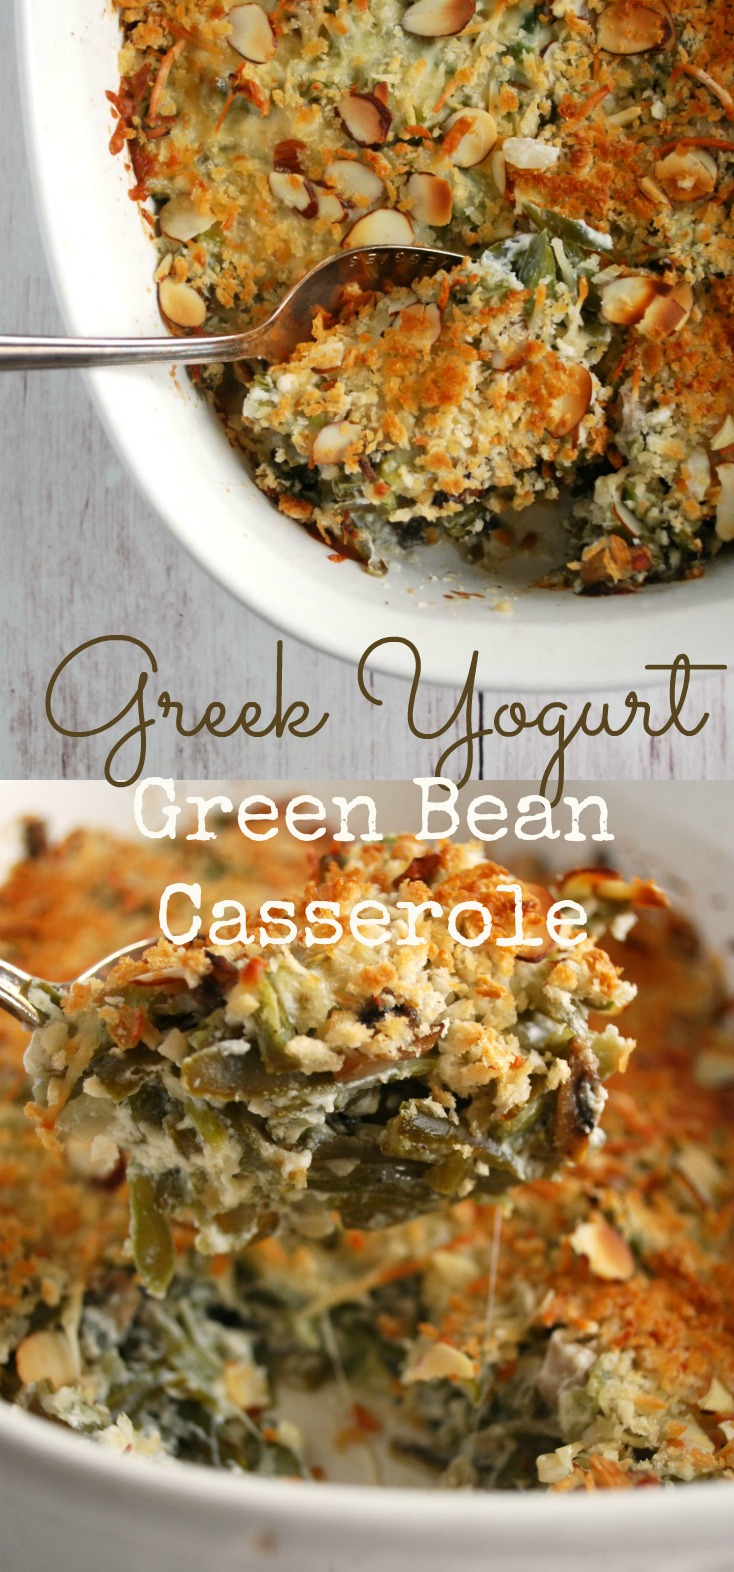 This green bean casserole uses greek yogurt instead of cream of mushroom soup! Its EASY to make and so delicious!!!